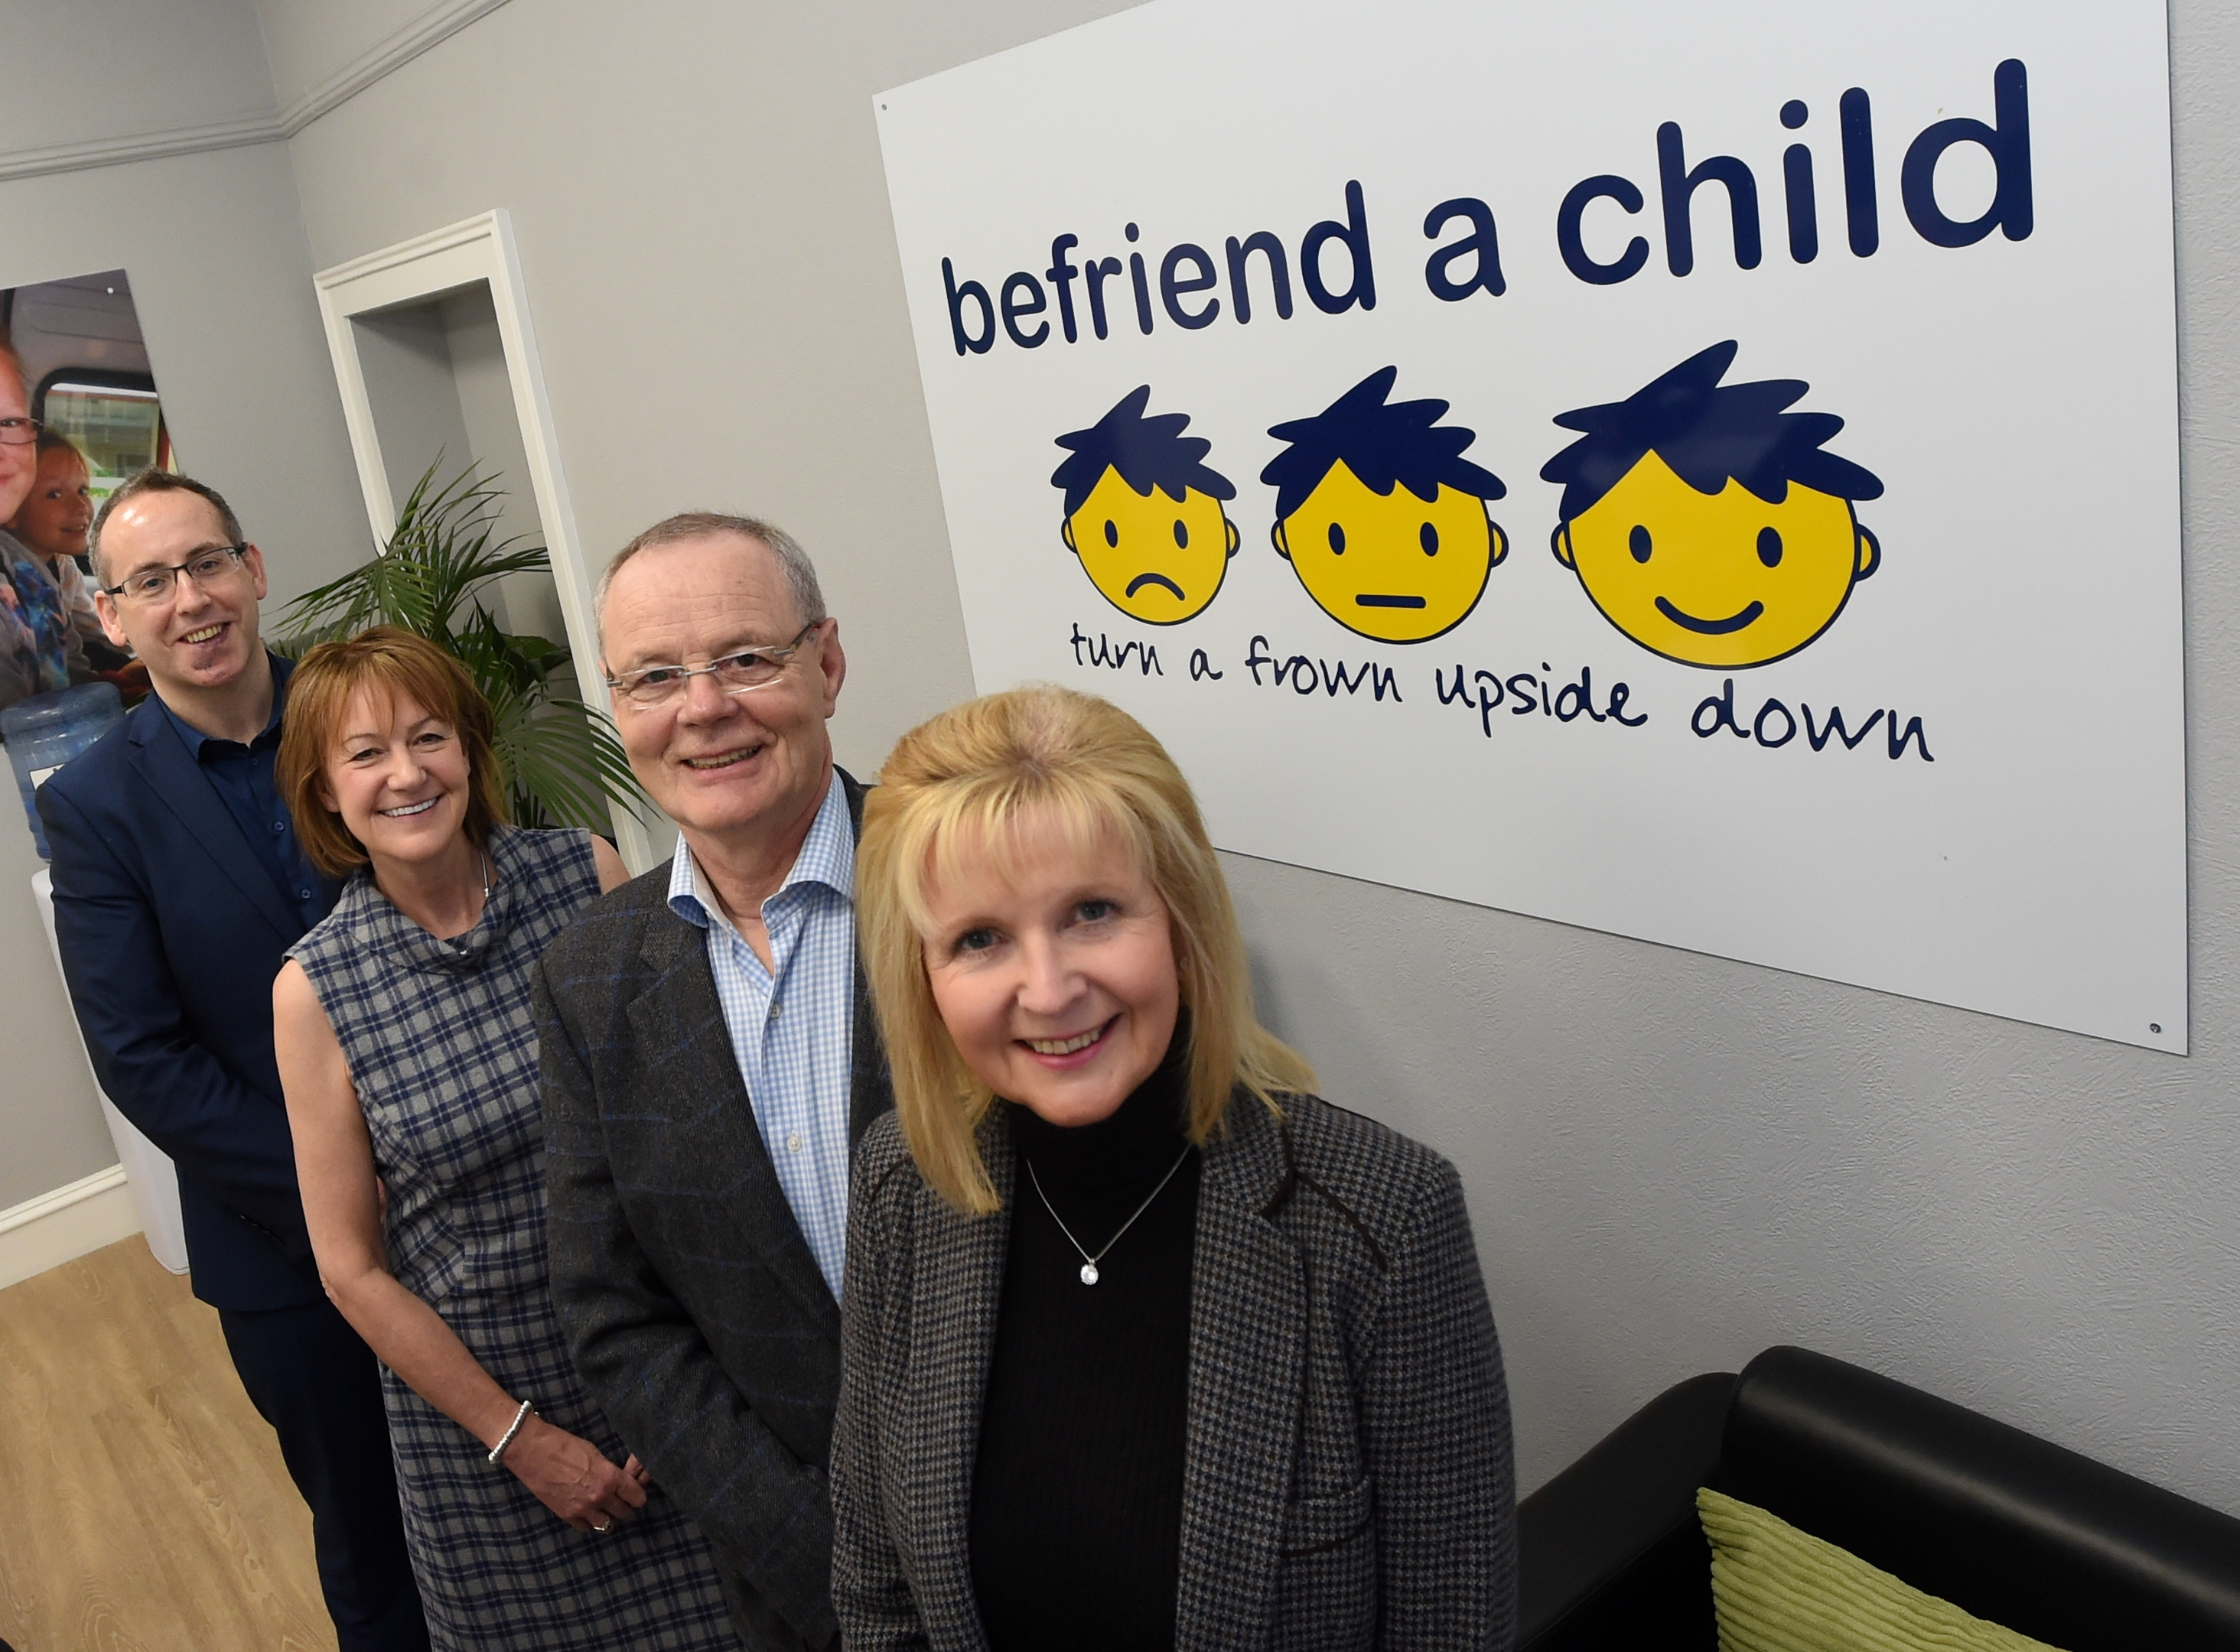 Mentoring:  Richard Stewart (Head of Marketing, Fundraising and External affairs at Befriend a Child), Jackie Hothersall (Chief Executive Officer of Befriend a Child), Bill Budge and Lorraine Budge. The Budge's have helped establish a mentoring service which Befriend a Child will partner with schools  to give S3 and S4 pupils mentoring.